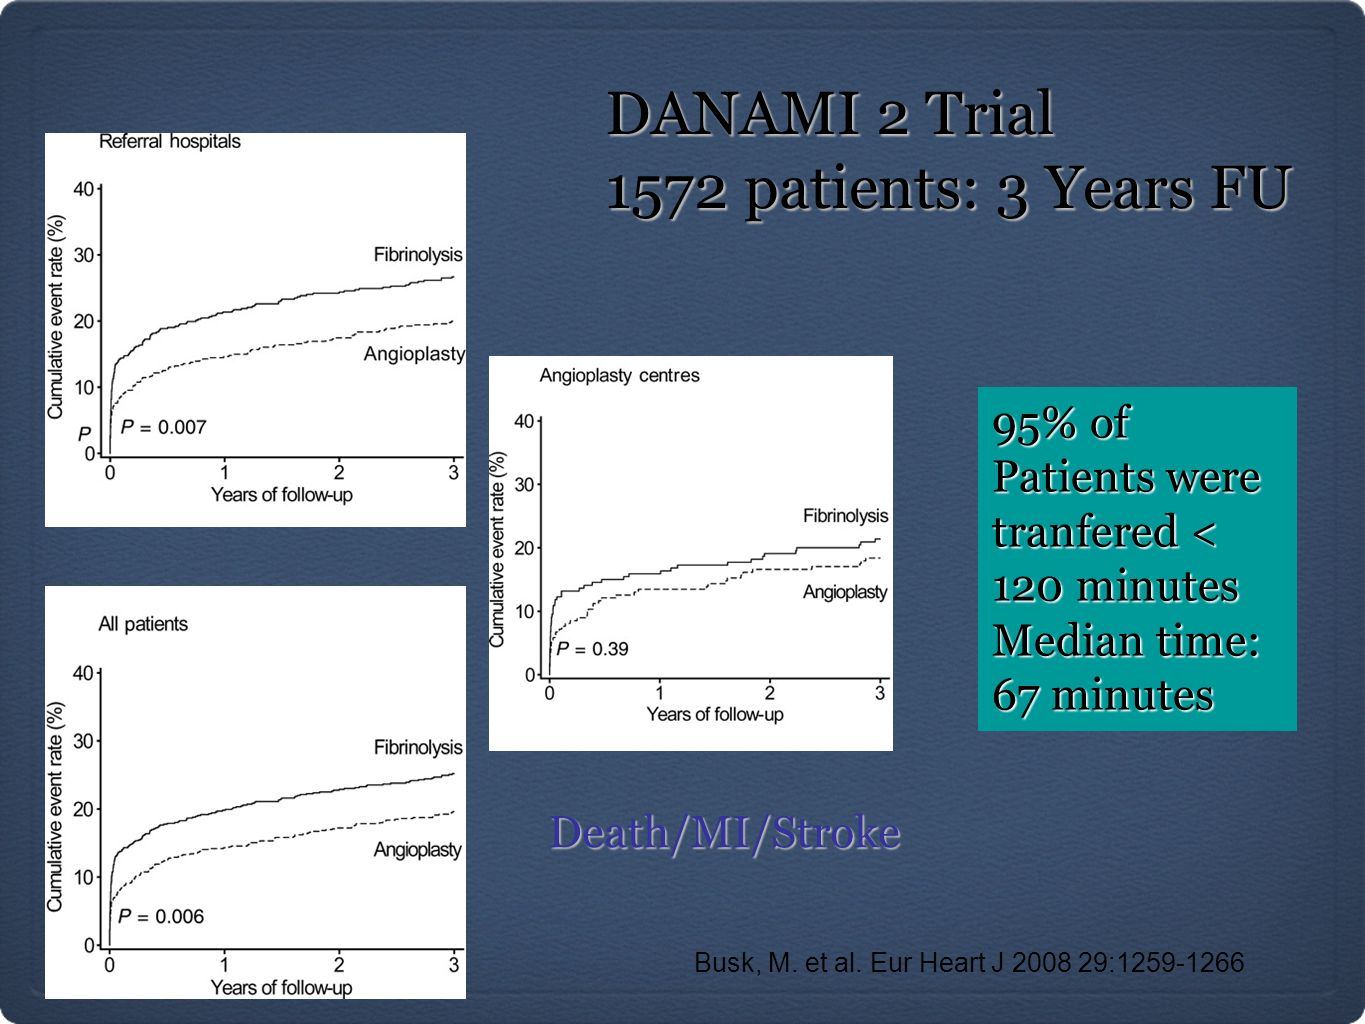 DANAMI 2 Trial 1572 patients: 3 Years FU